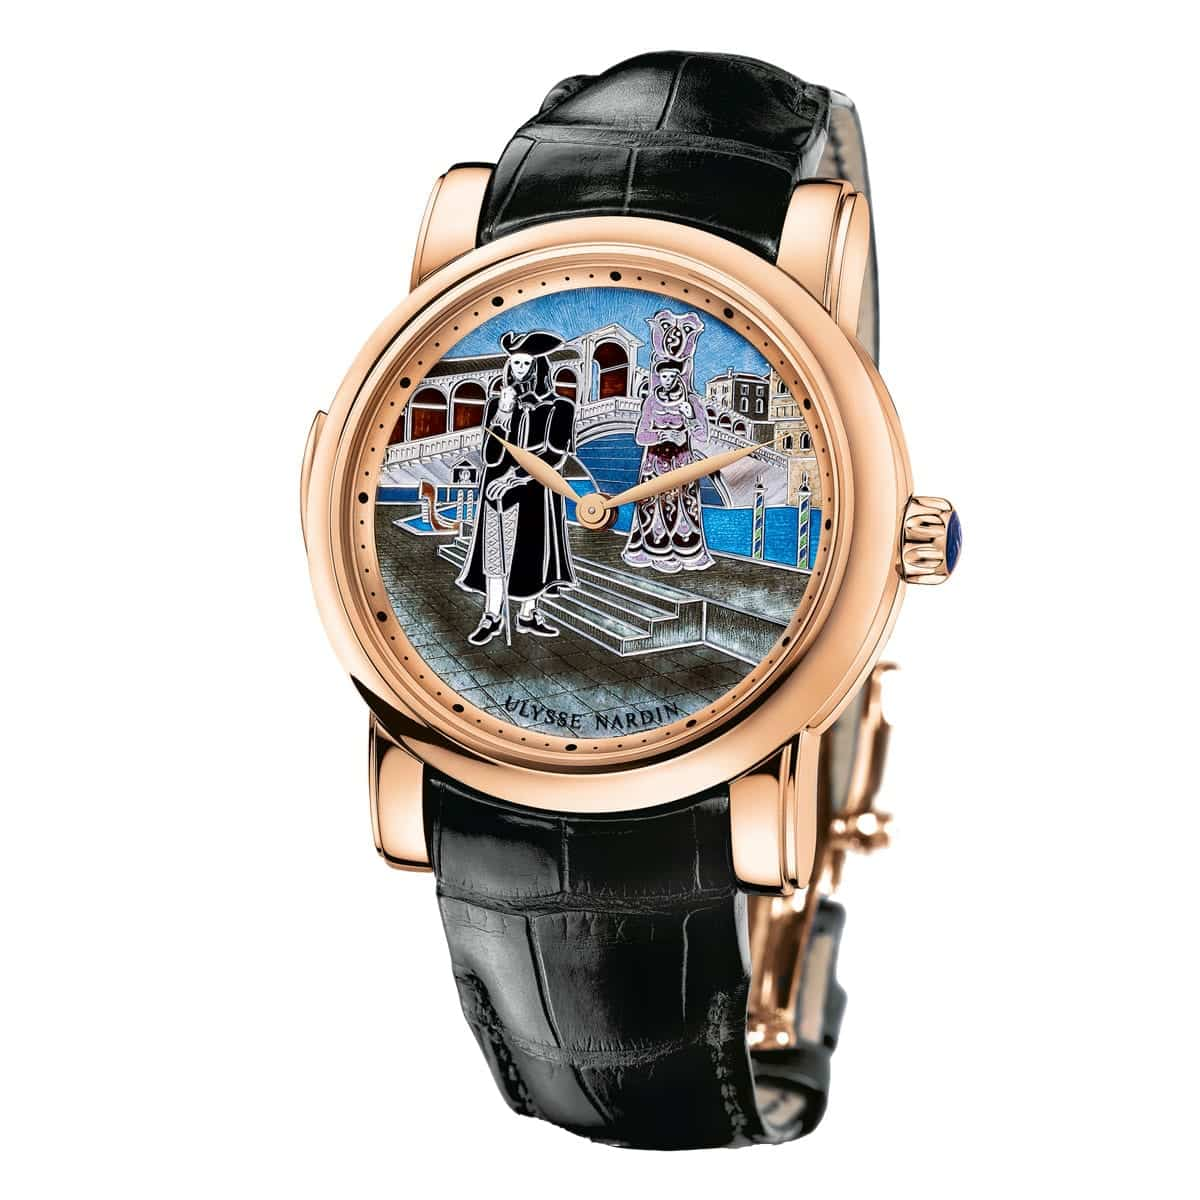 Ulysse Nardin - Carnival of Venice Minute Repeater